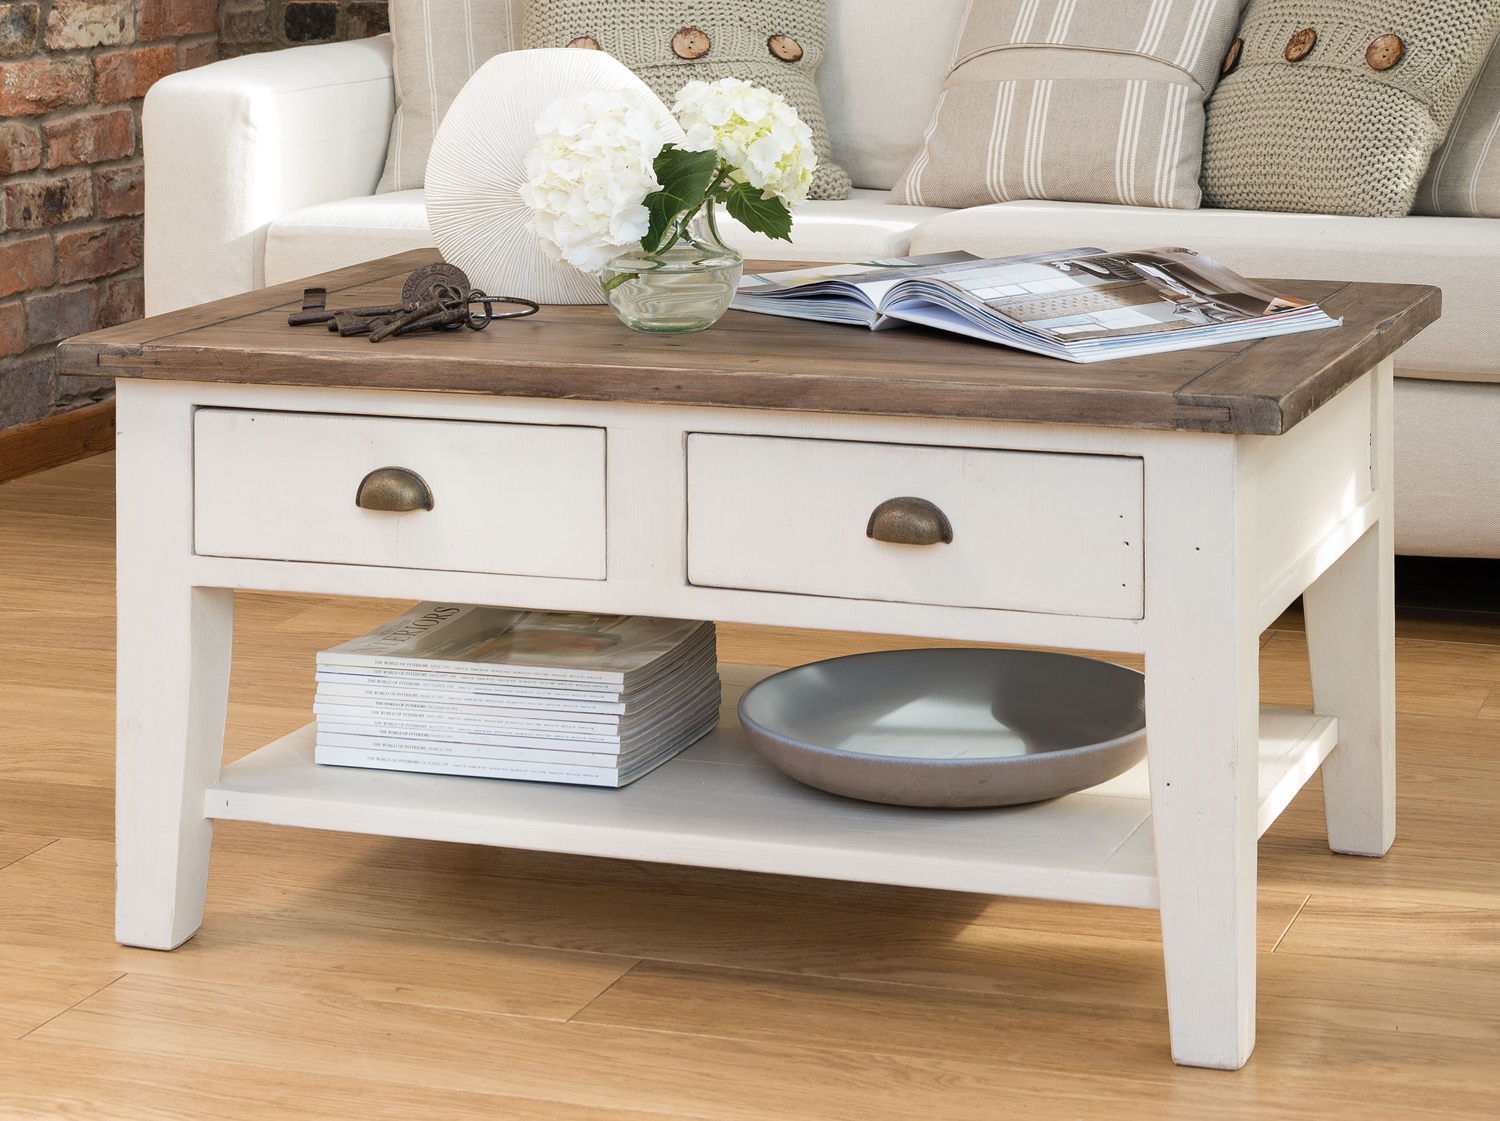 French Country Coffee Table With Two Drawers